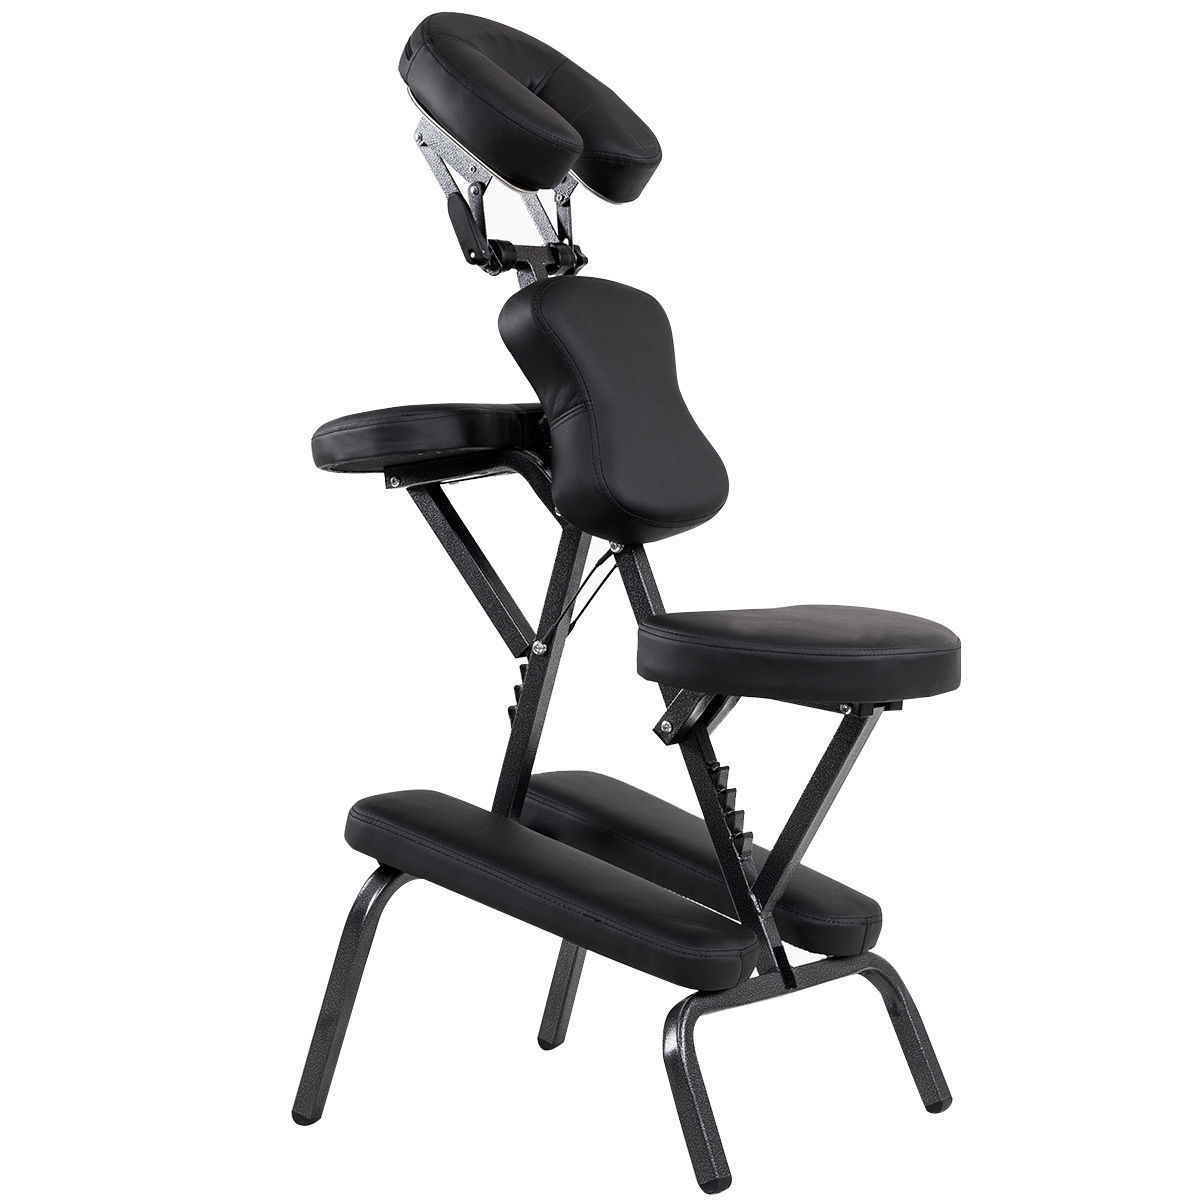 massage chair portable hanging b&q new leather travel tyc88